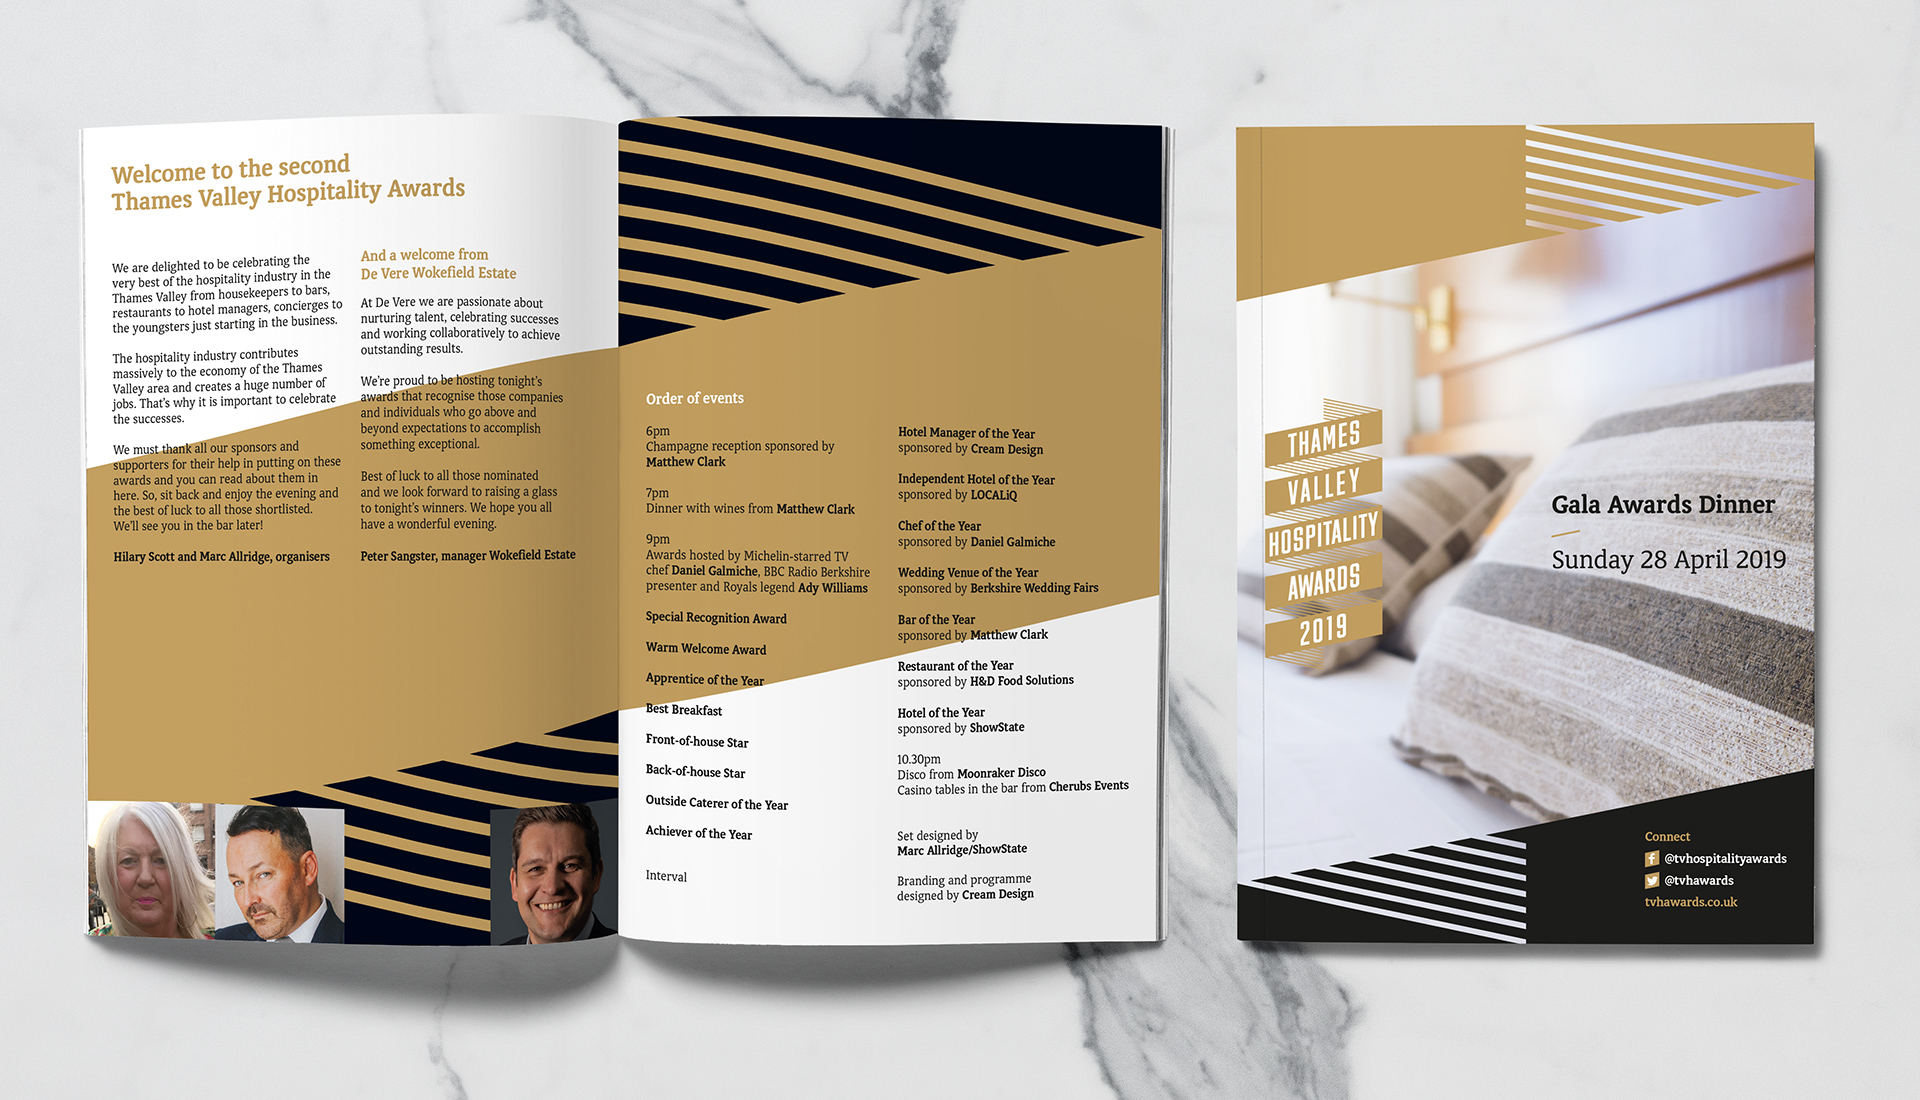 Thames Valley Hospitality Awards Programme